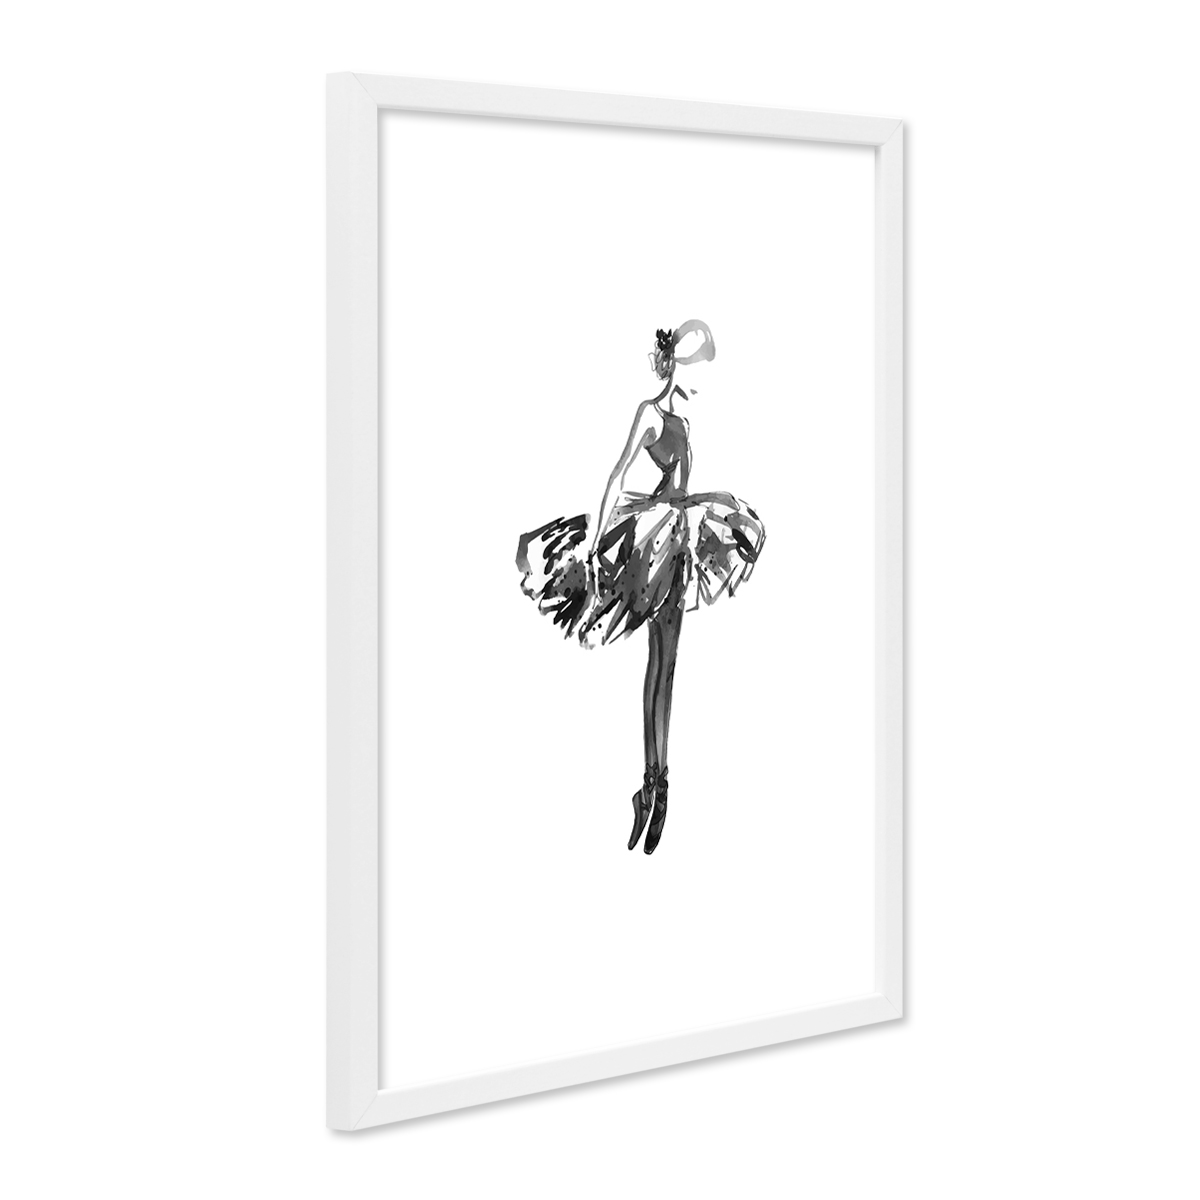 design poster mit bilderrahmen weiss 39 ballettt nzerin 39 30x40 cm schwarz weiss motiv ballerina. Black Bedroom Furniture Sets. Home Design Ideas